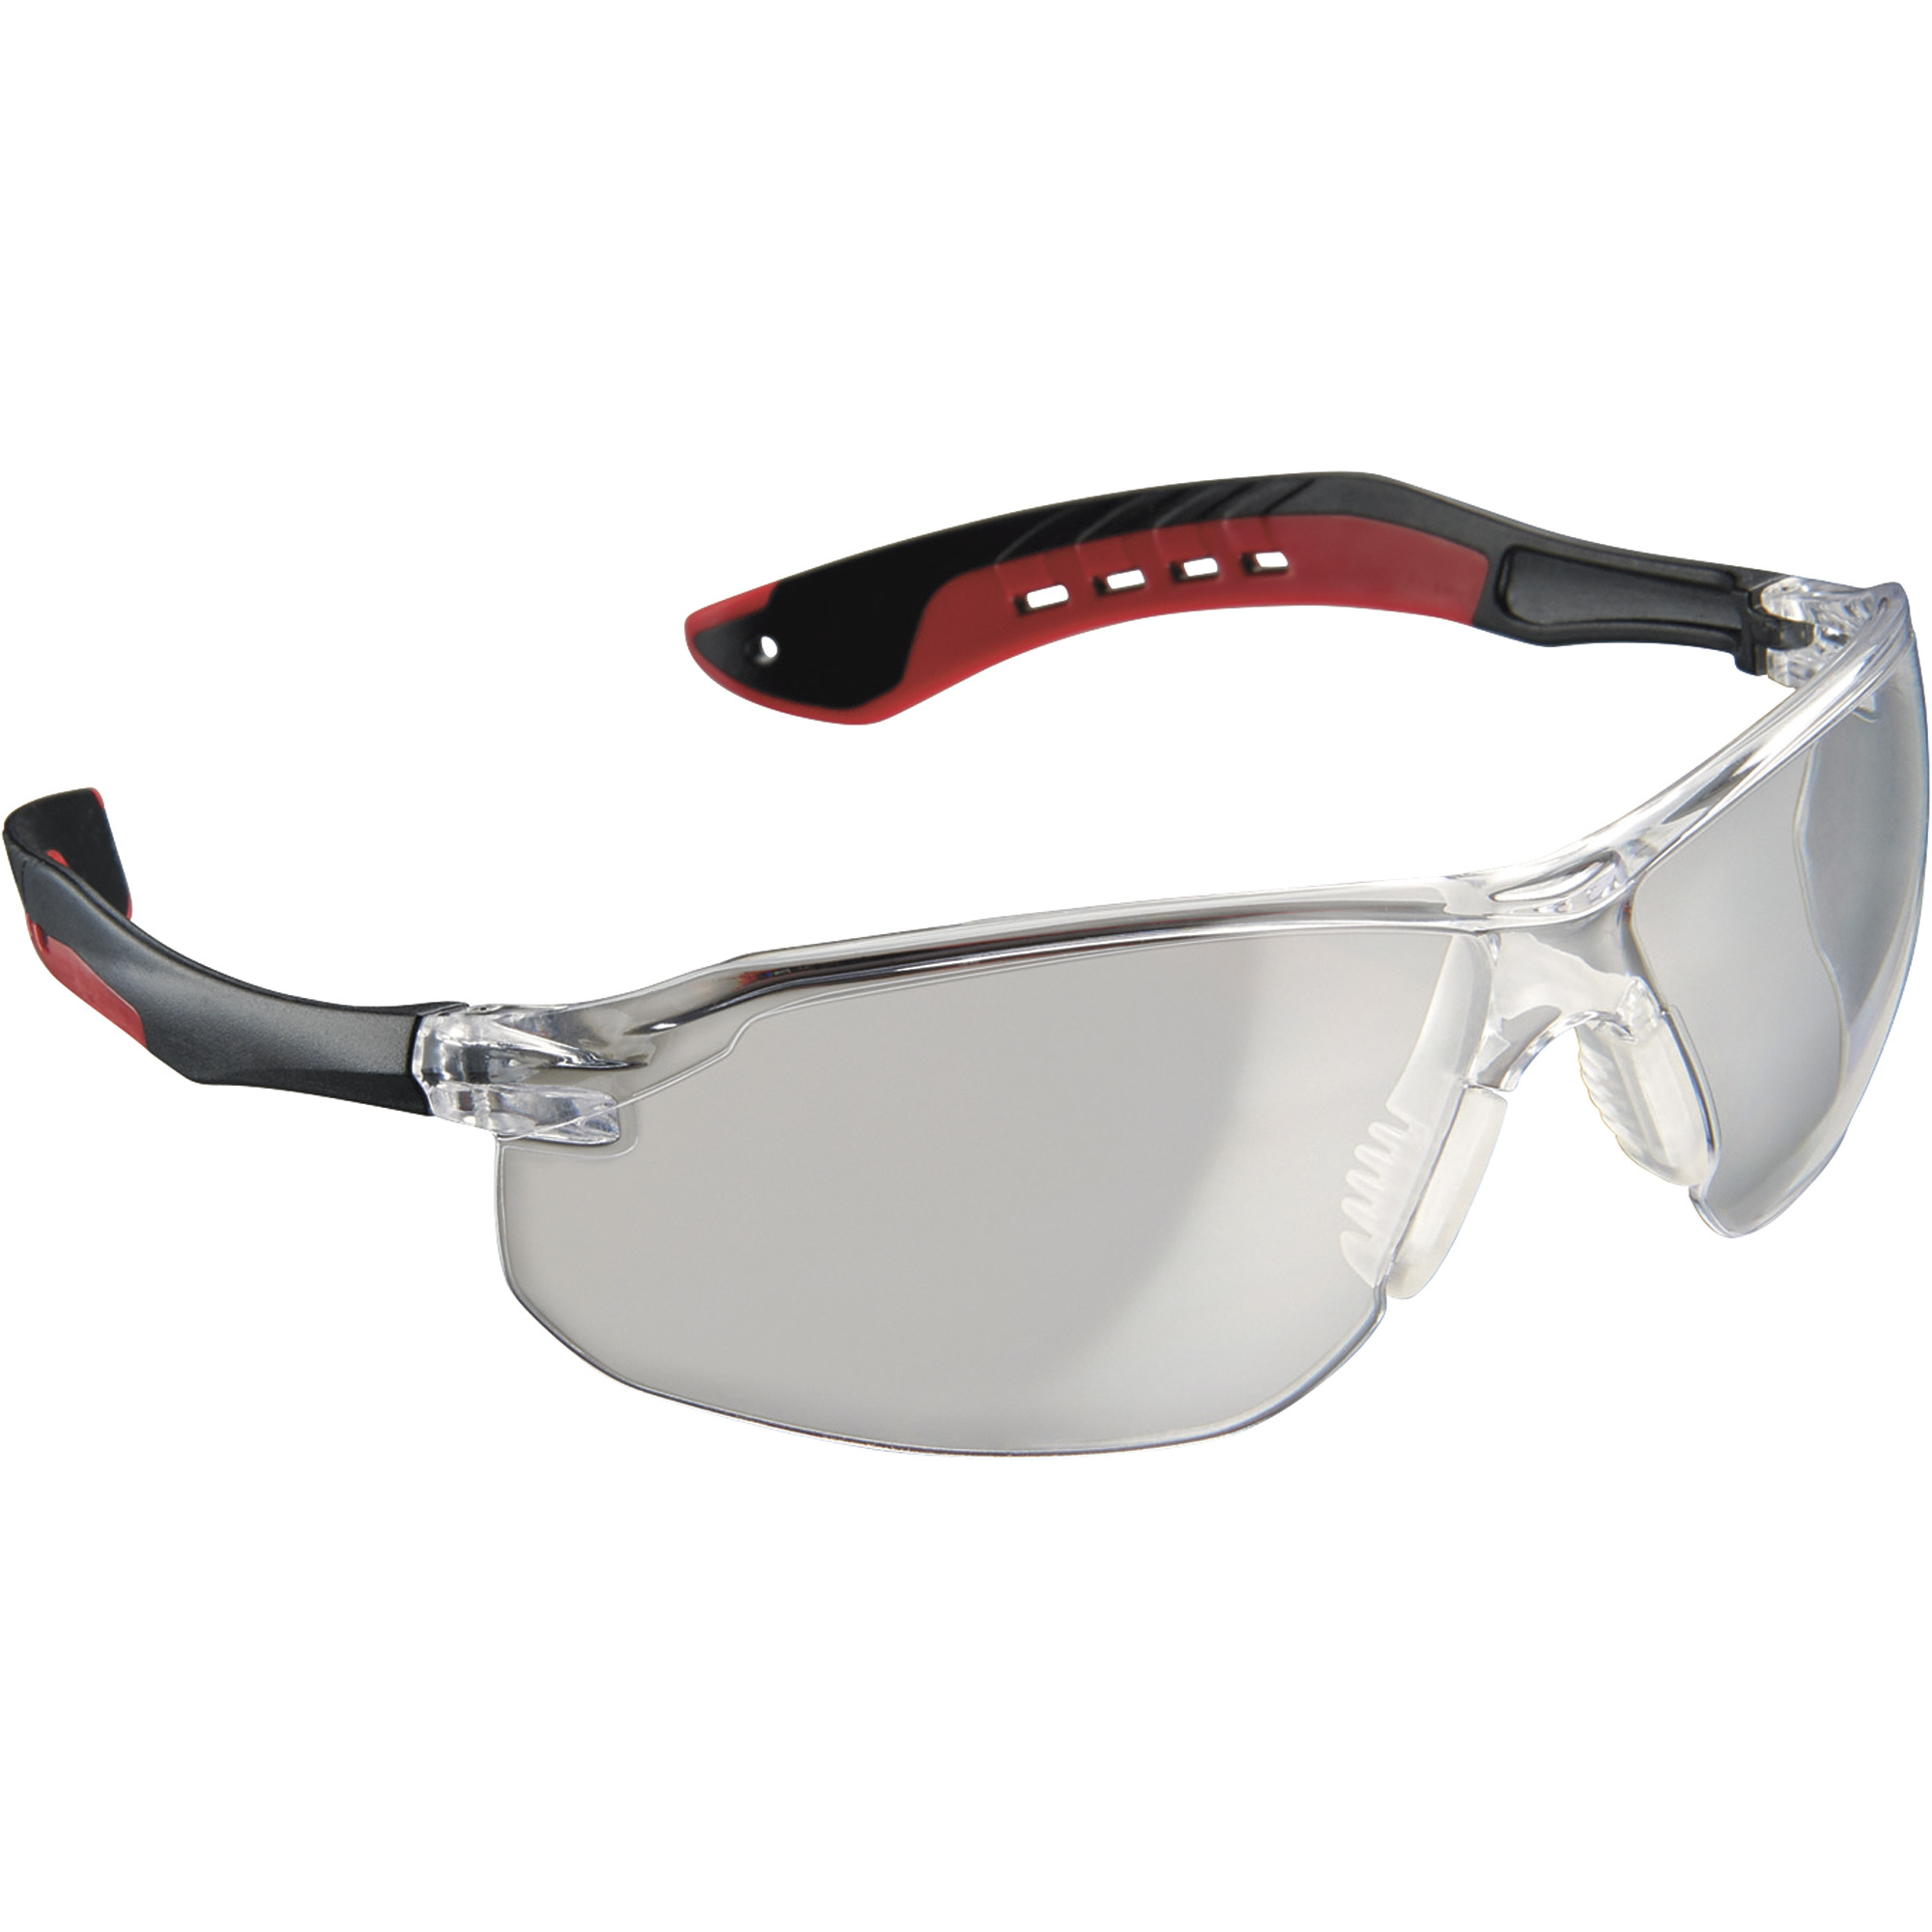 3m flat temple safety glasses u2014 clear lens model 47010wv6